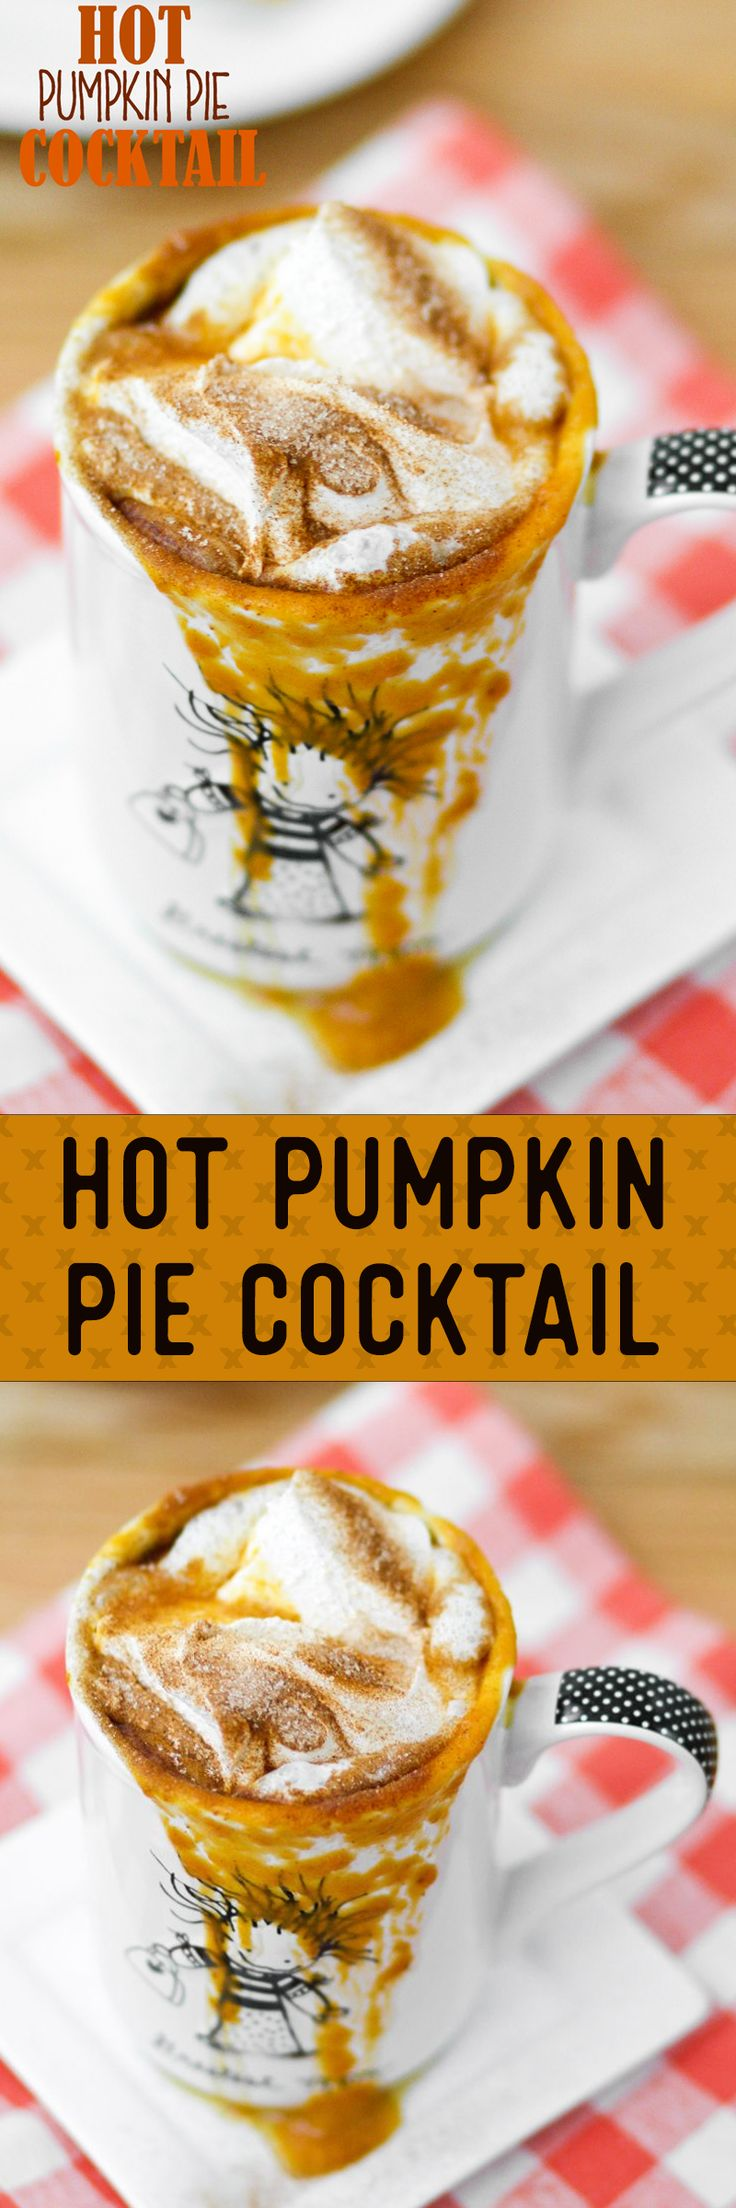 Hot Pumpkin Pie Cocktail -- tastes like a warm pumpkin pie with a kick!! So good -- perfect Thanksgiving cocktail!!